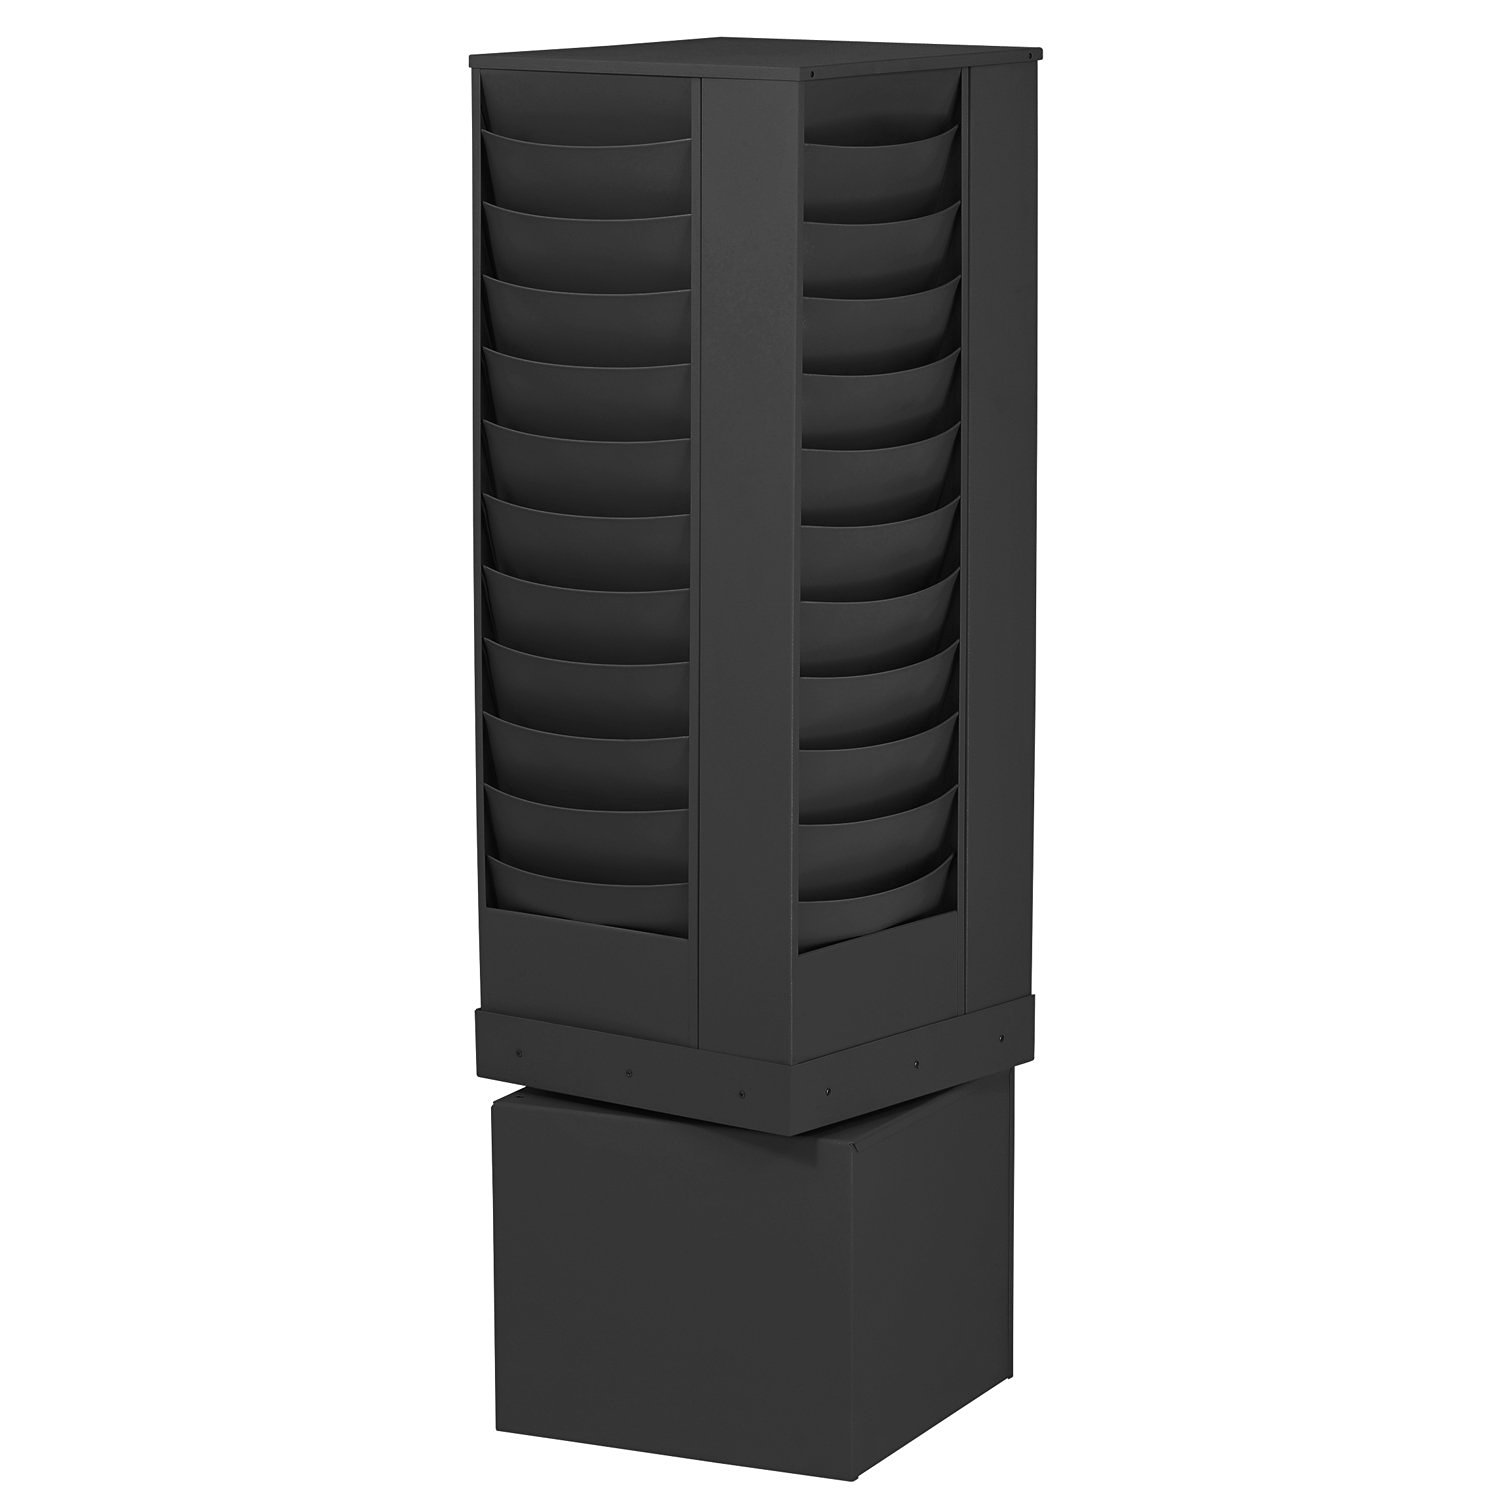 Buddy Products 44-Pocket Curved Steel Rotating Display Rack, 13.75 x 49.75 x 13.75 Inches, Black (0865-4)